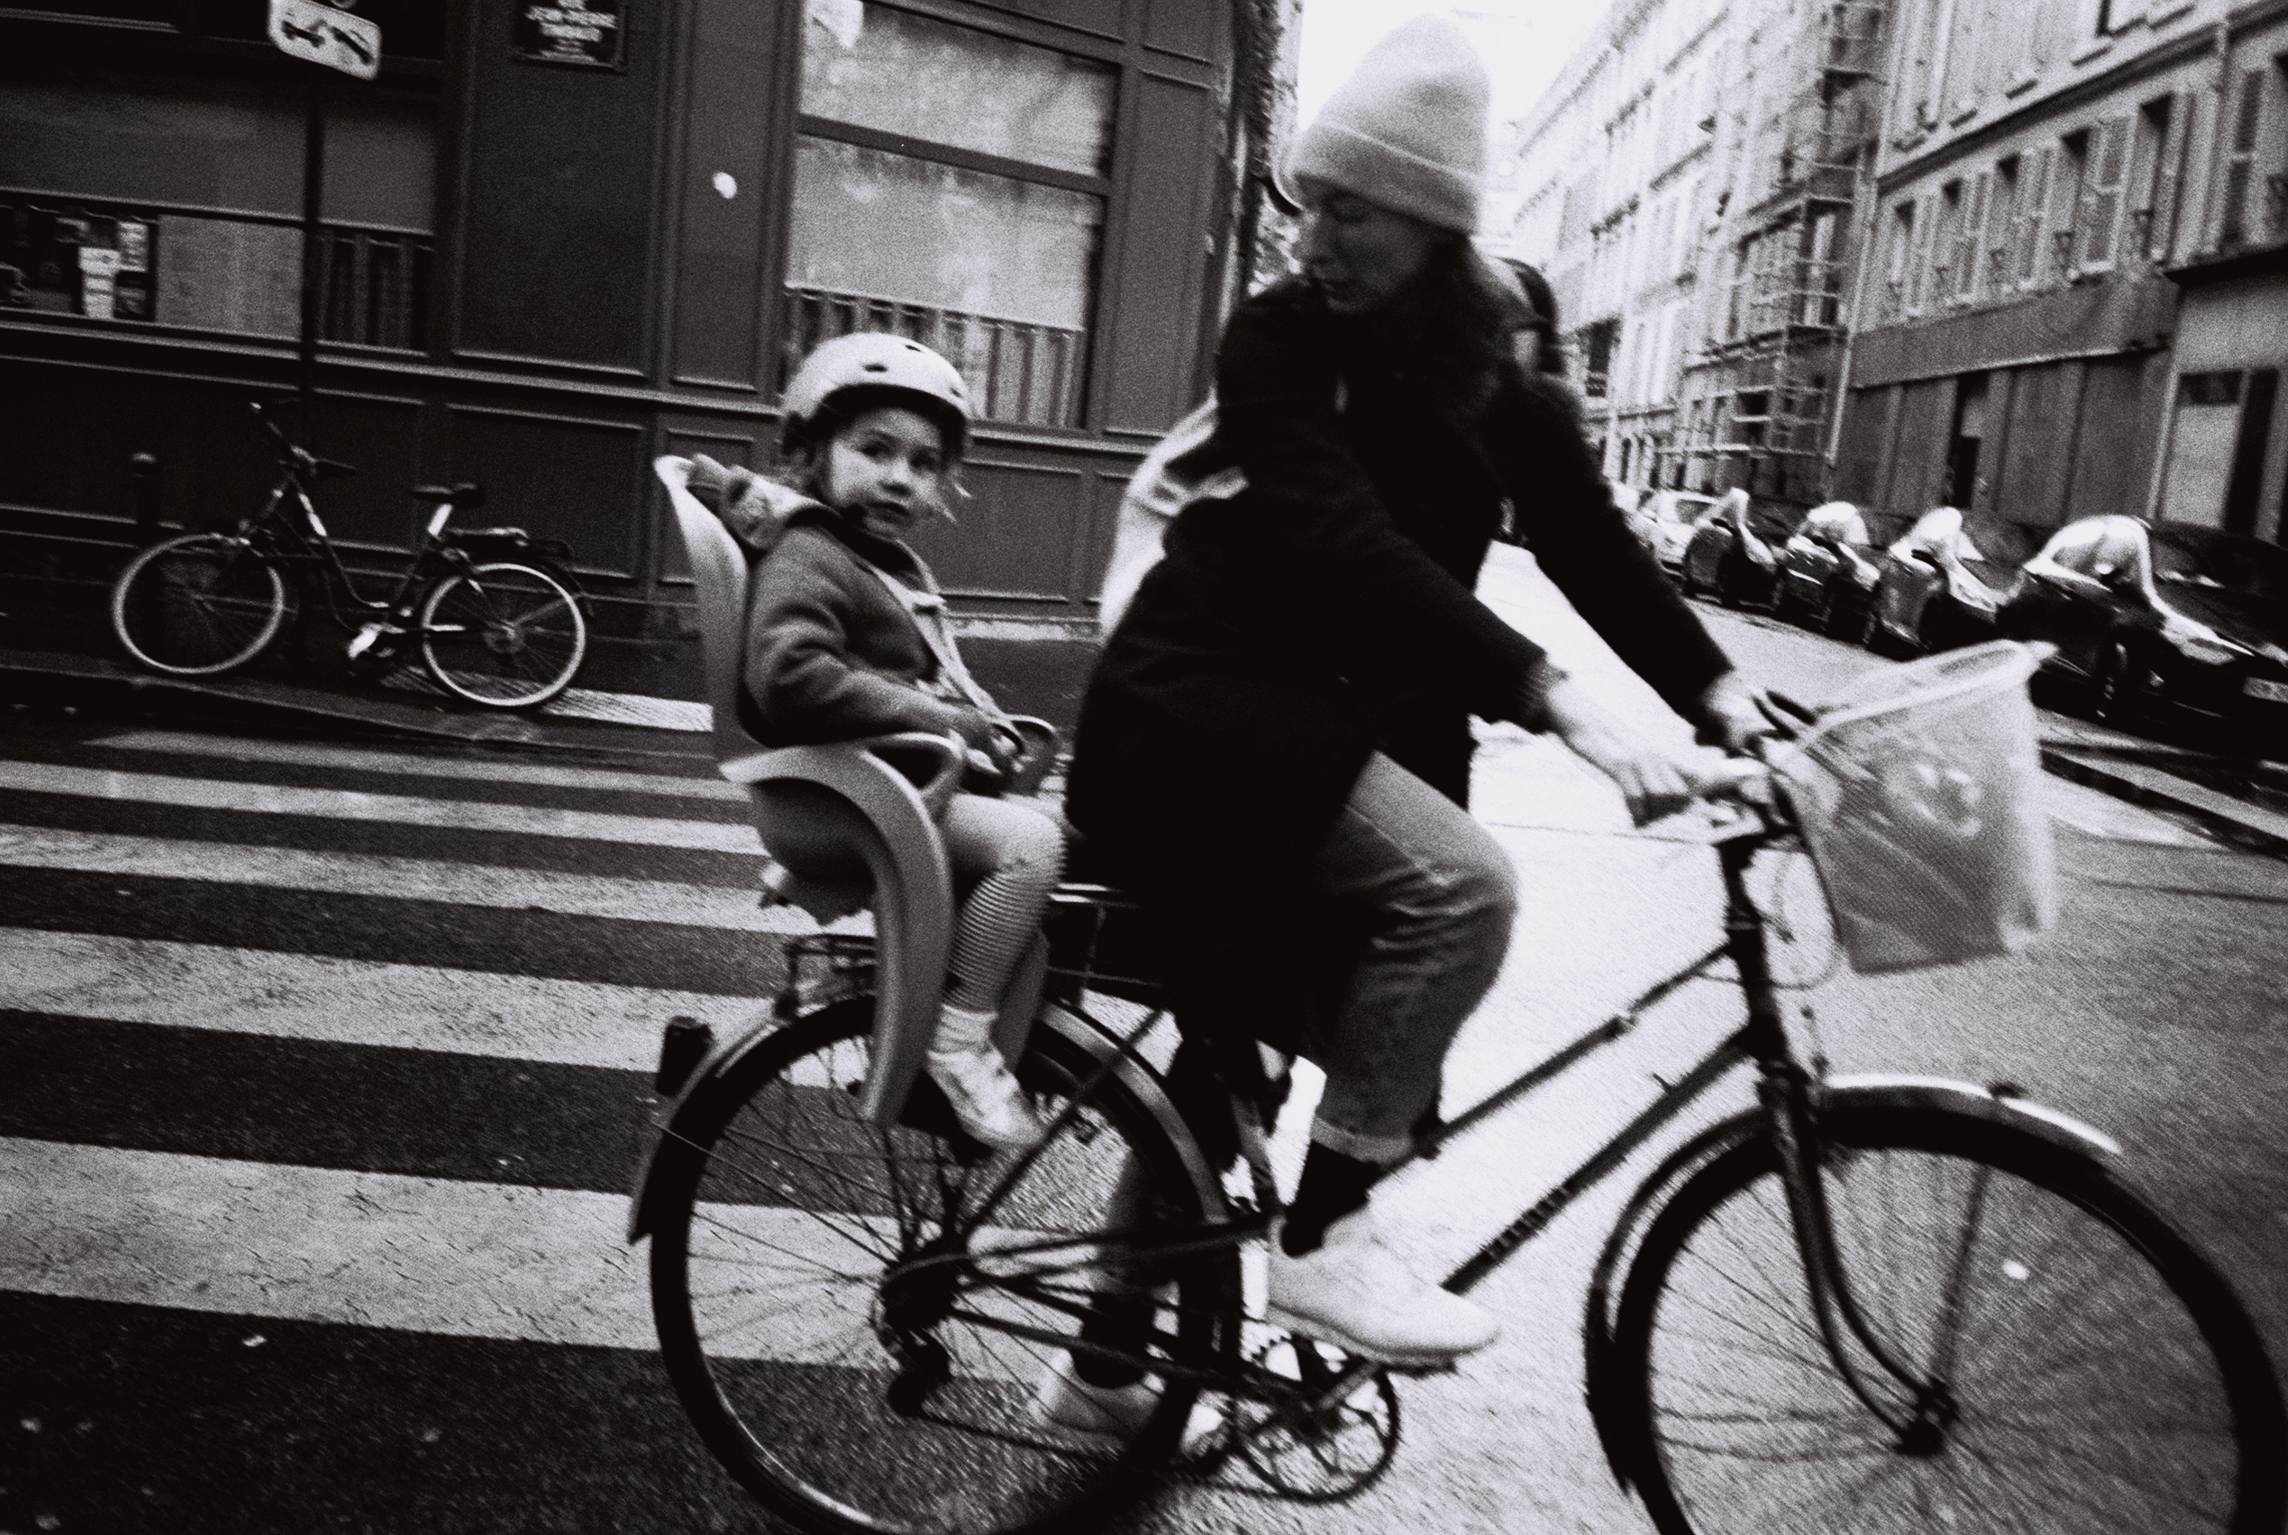 Kid on bicycle